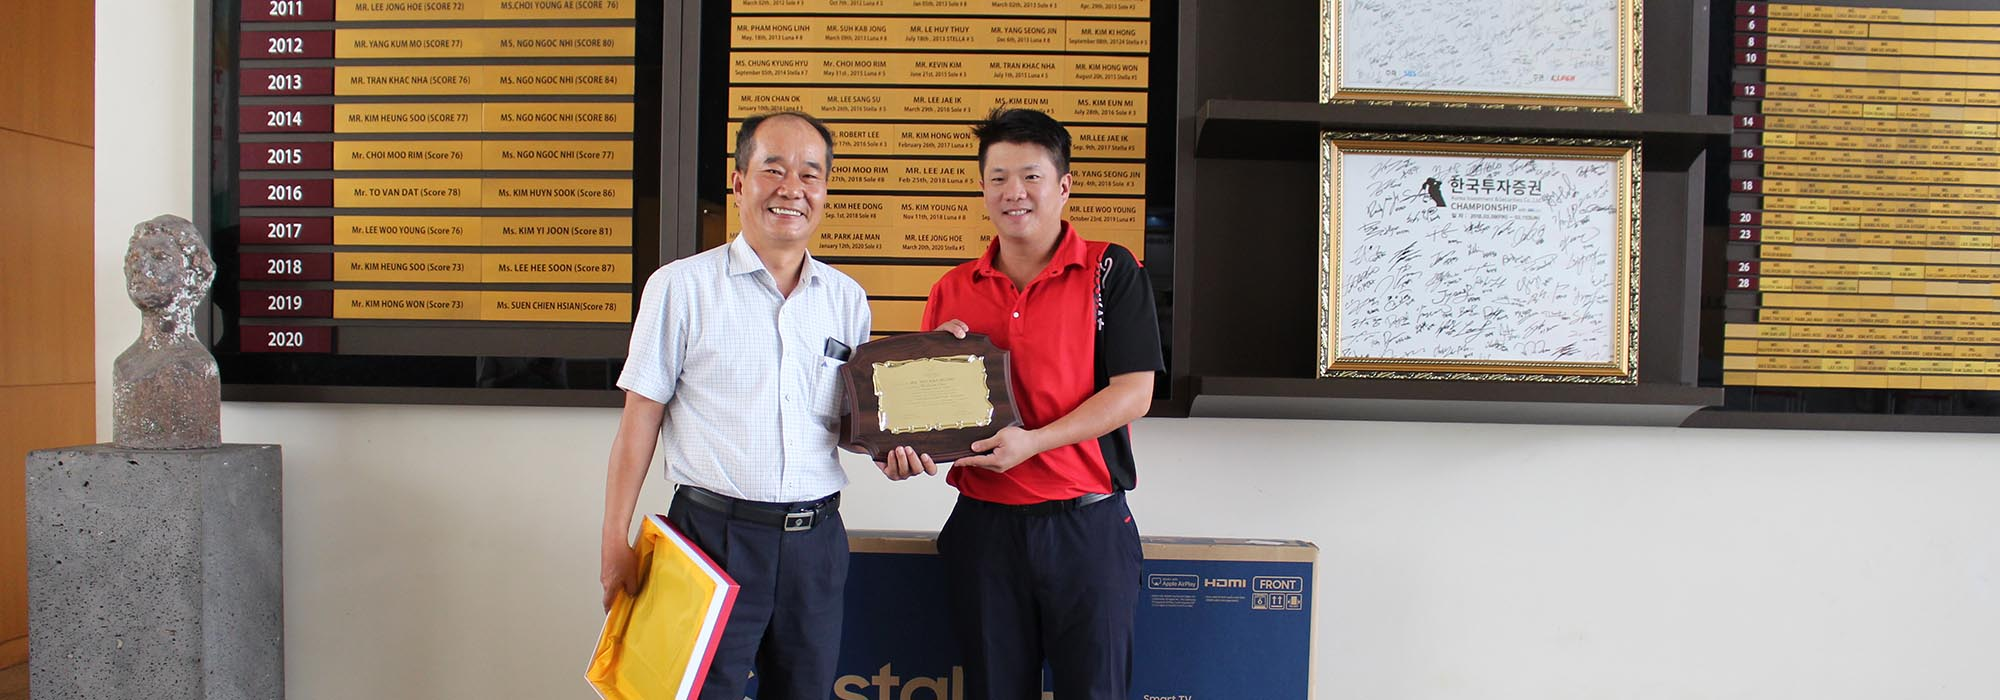 Hole-in-one Mr. WEI HAN HUANG